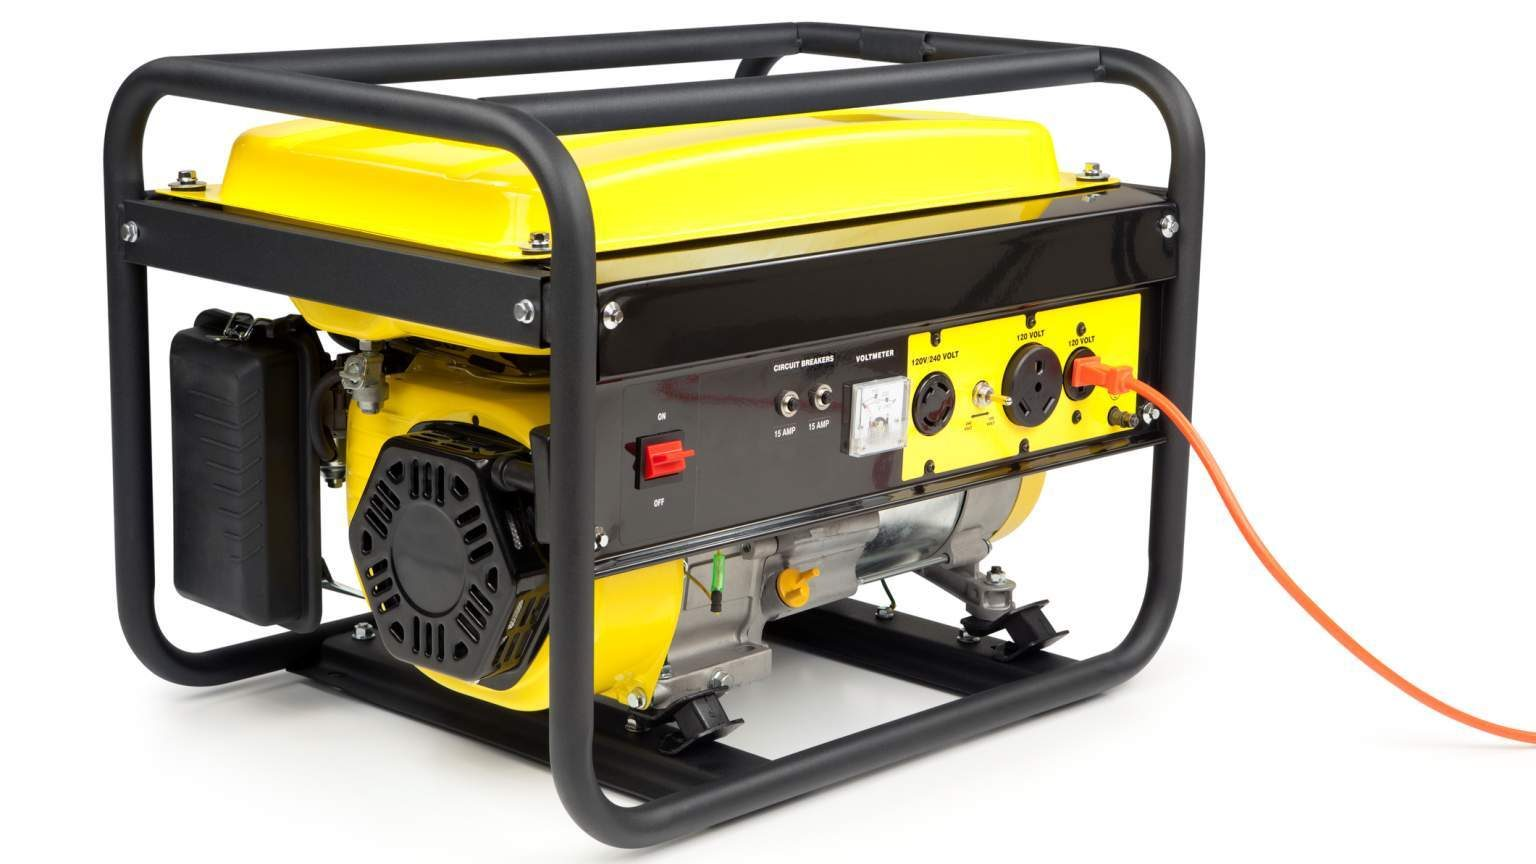 Gasoline powered, 4000 watt, portable electric generator. Isolated on a white background.